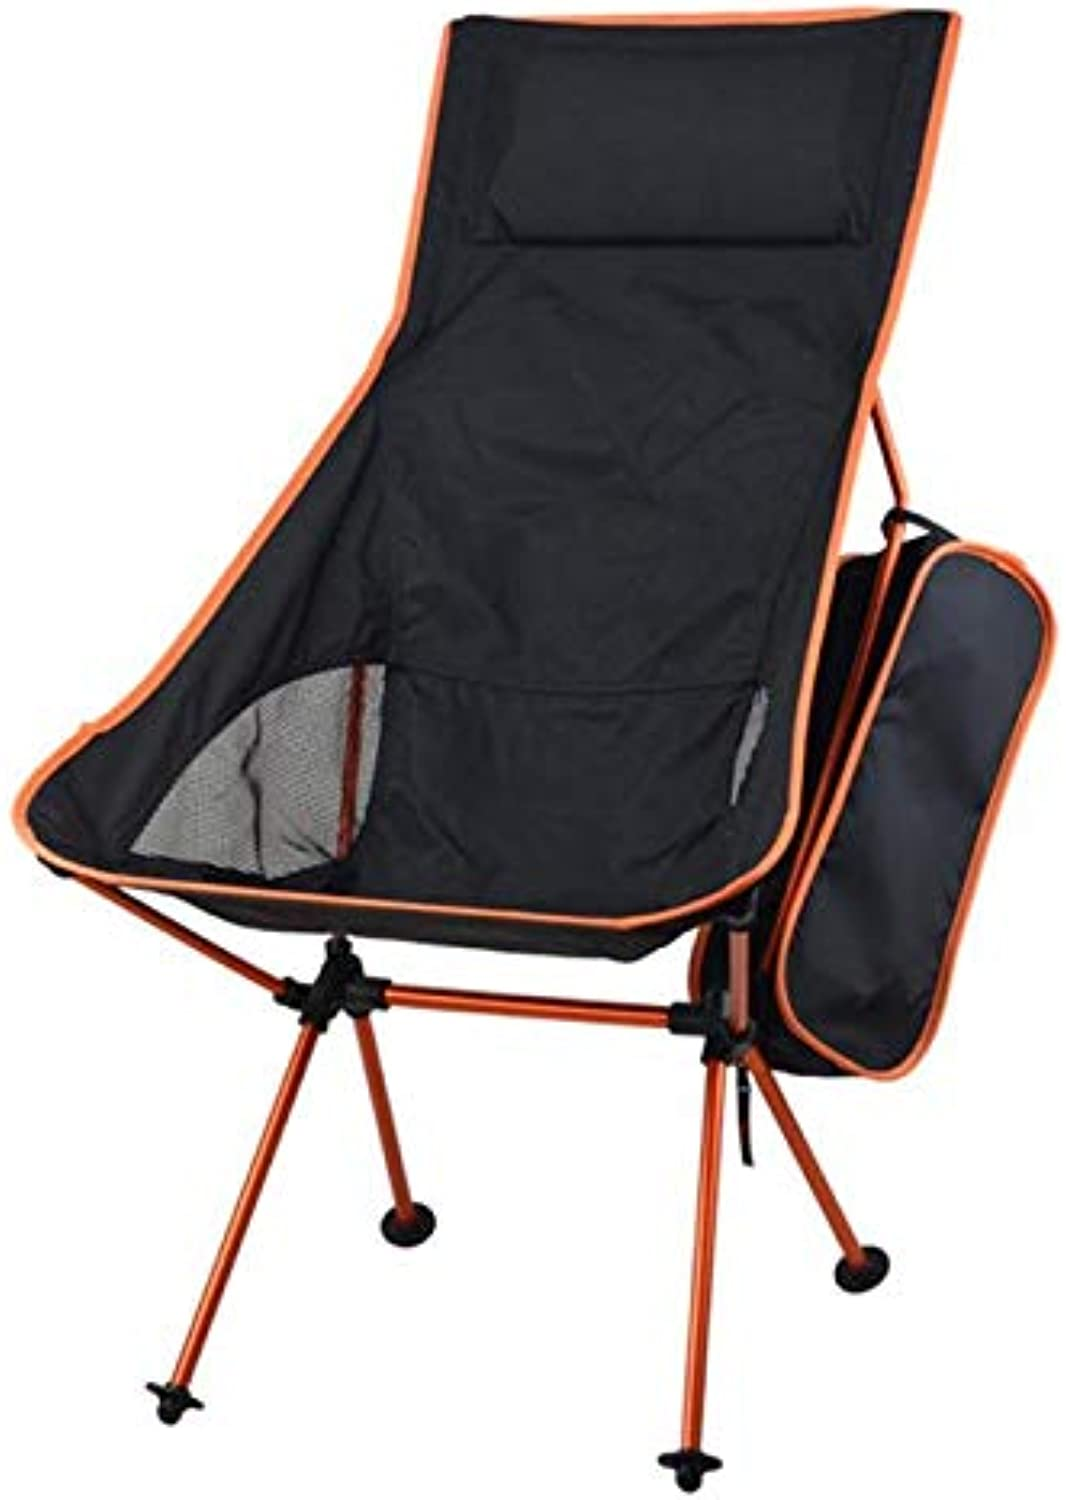 FishingAccessories  Portable Collapsible Moon Chair Fishing Camping BBQ Stool Folding Extended Hiking Seat Garden Ultralight Office Home Furniture